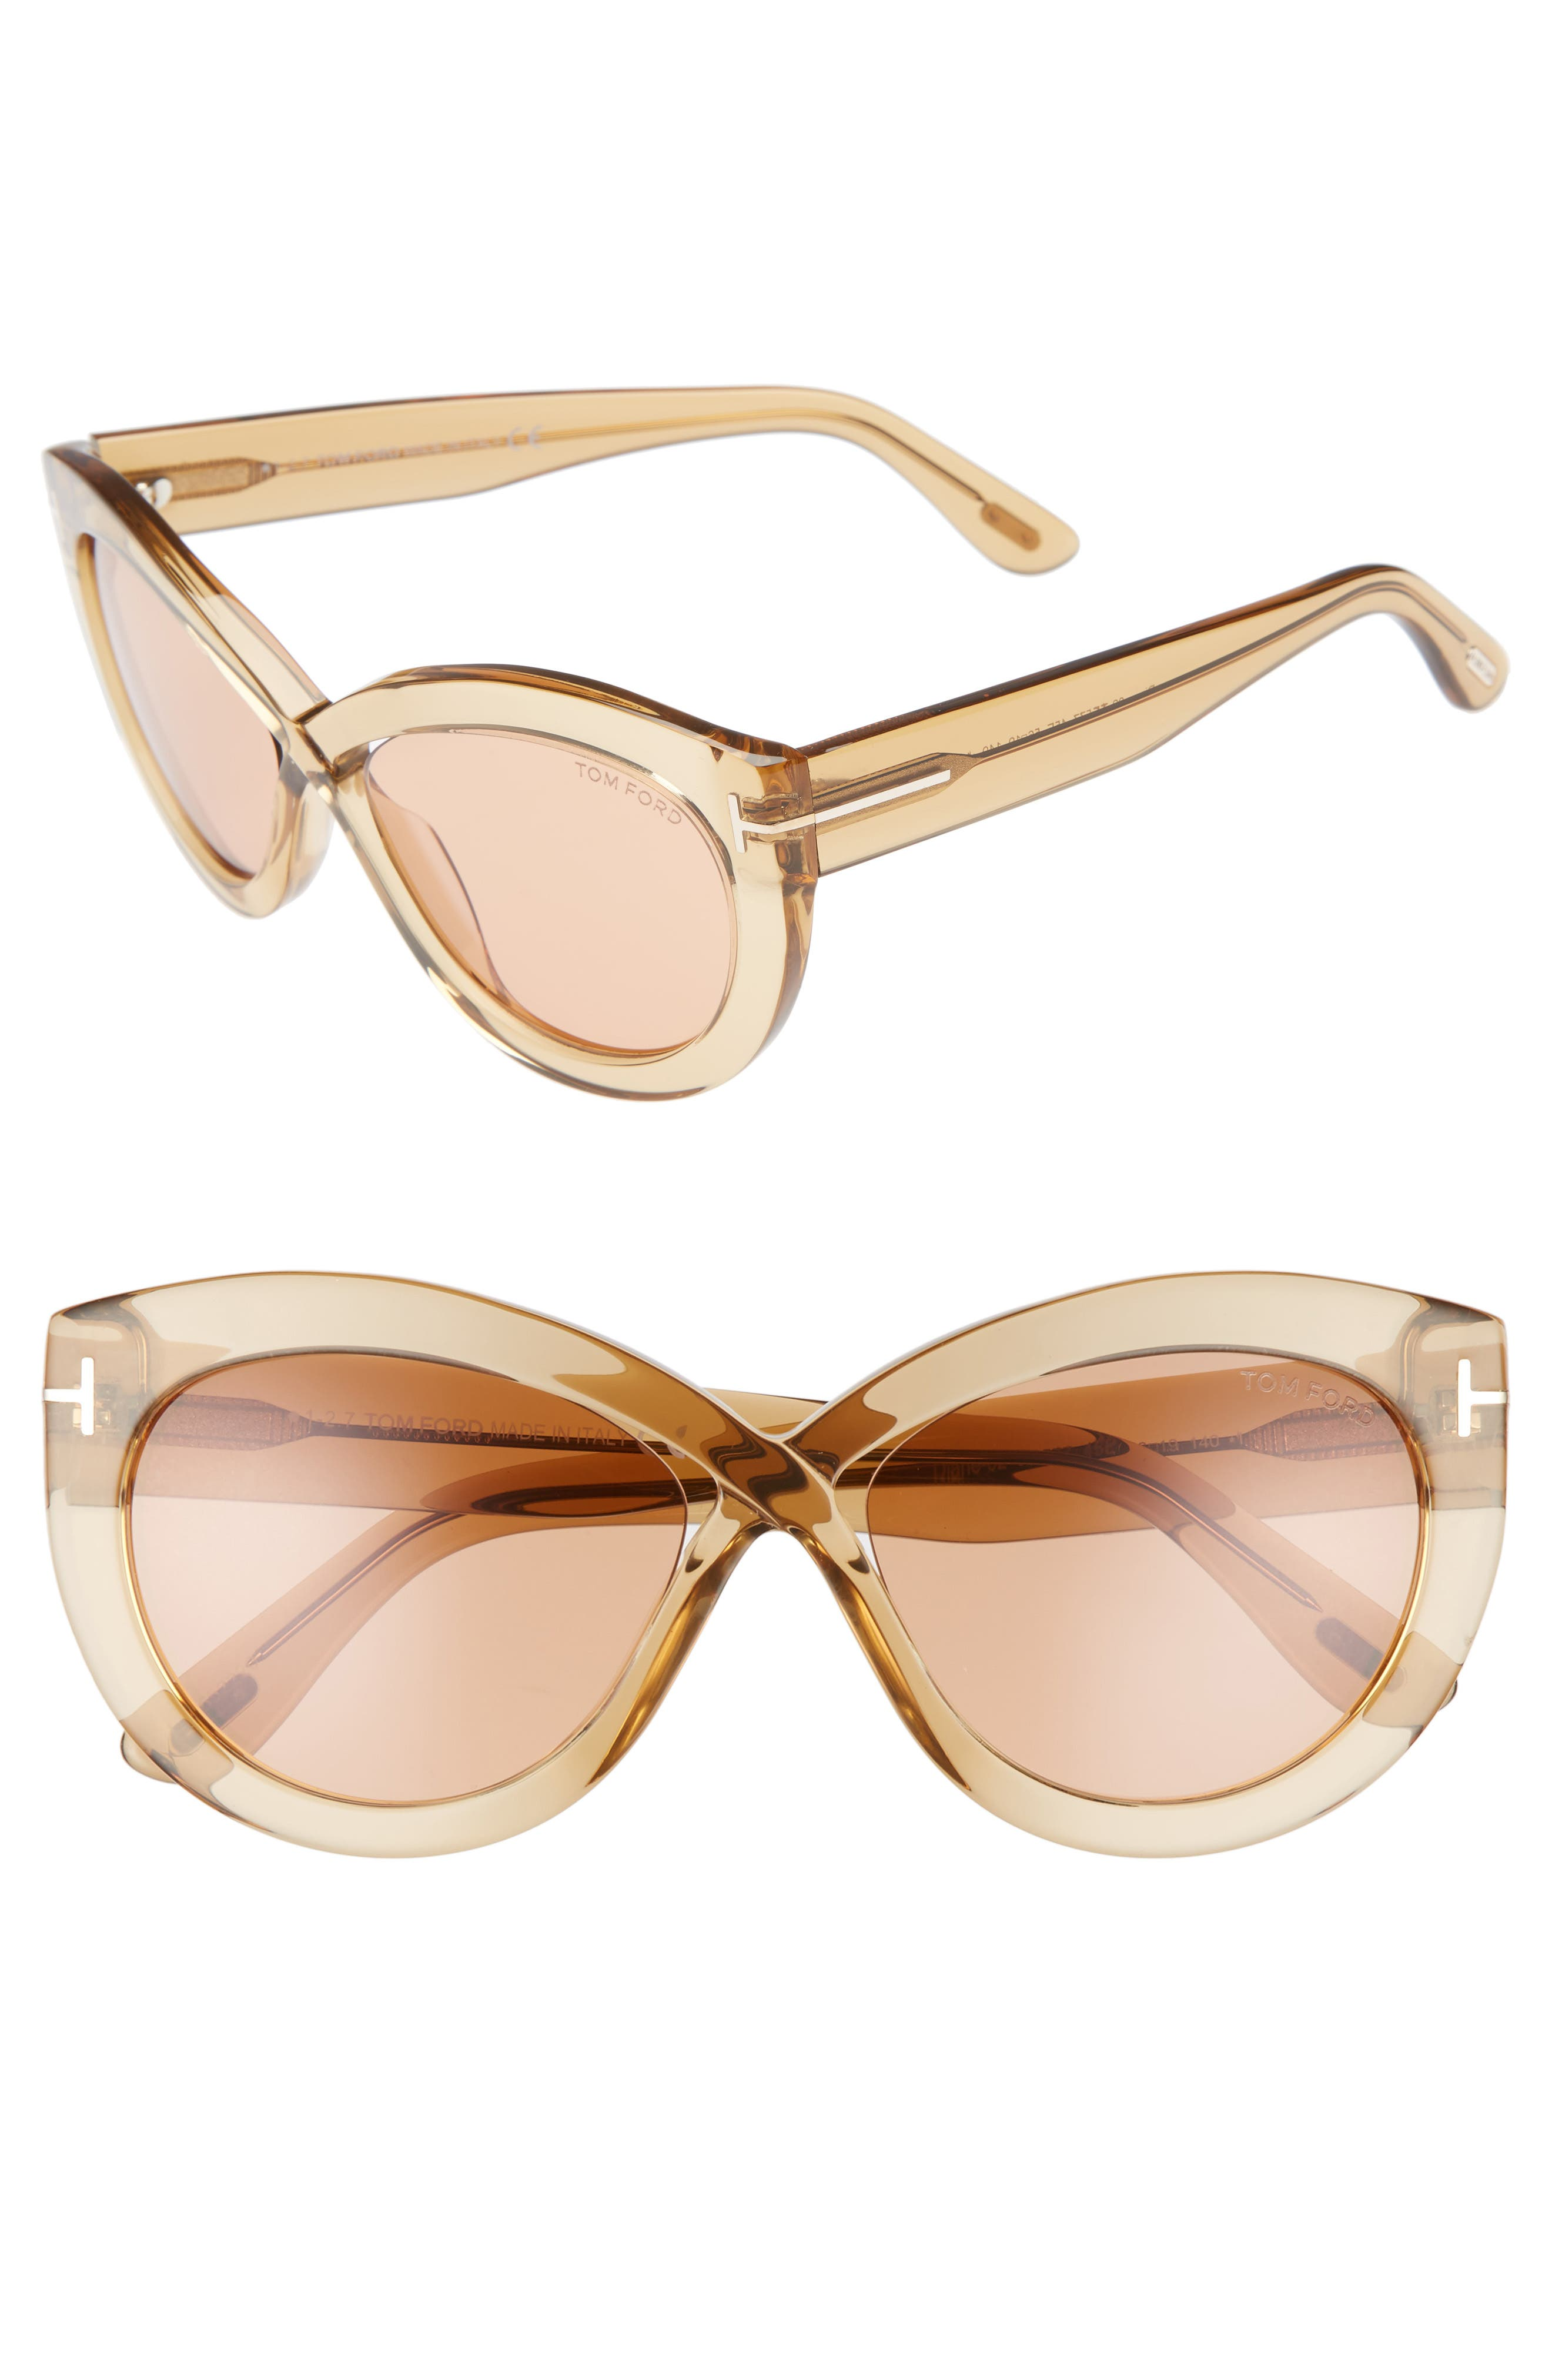 Alternate Image 1 Selected - Tom Ford Diane 56mm Butterfly Sunglasses